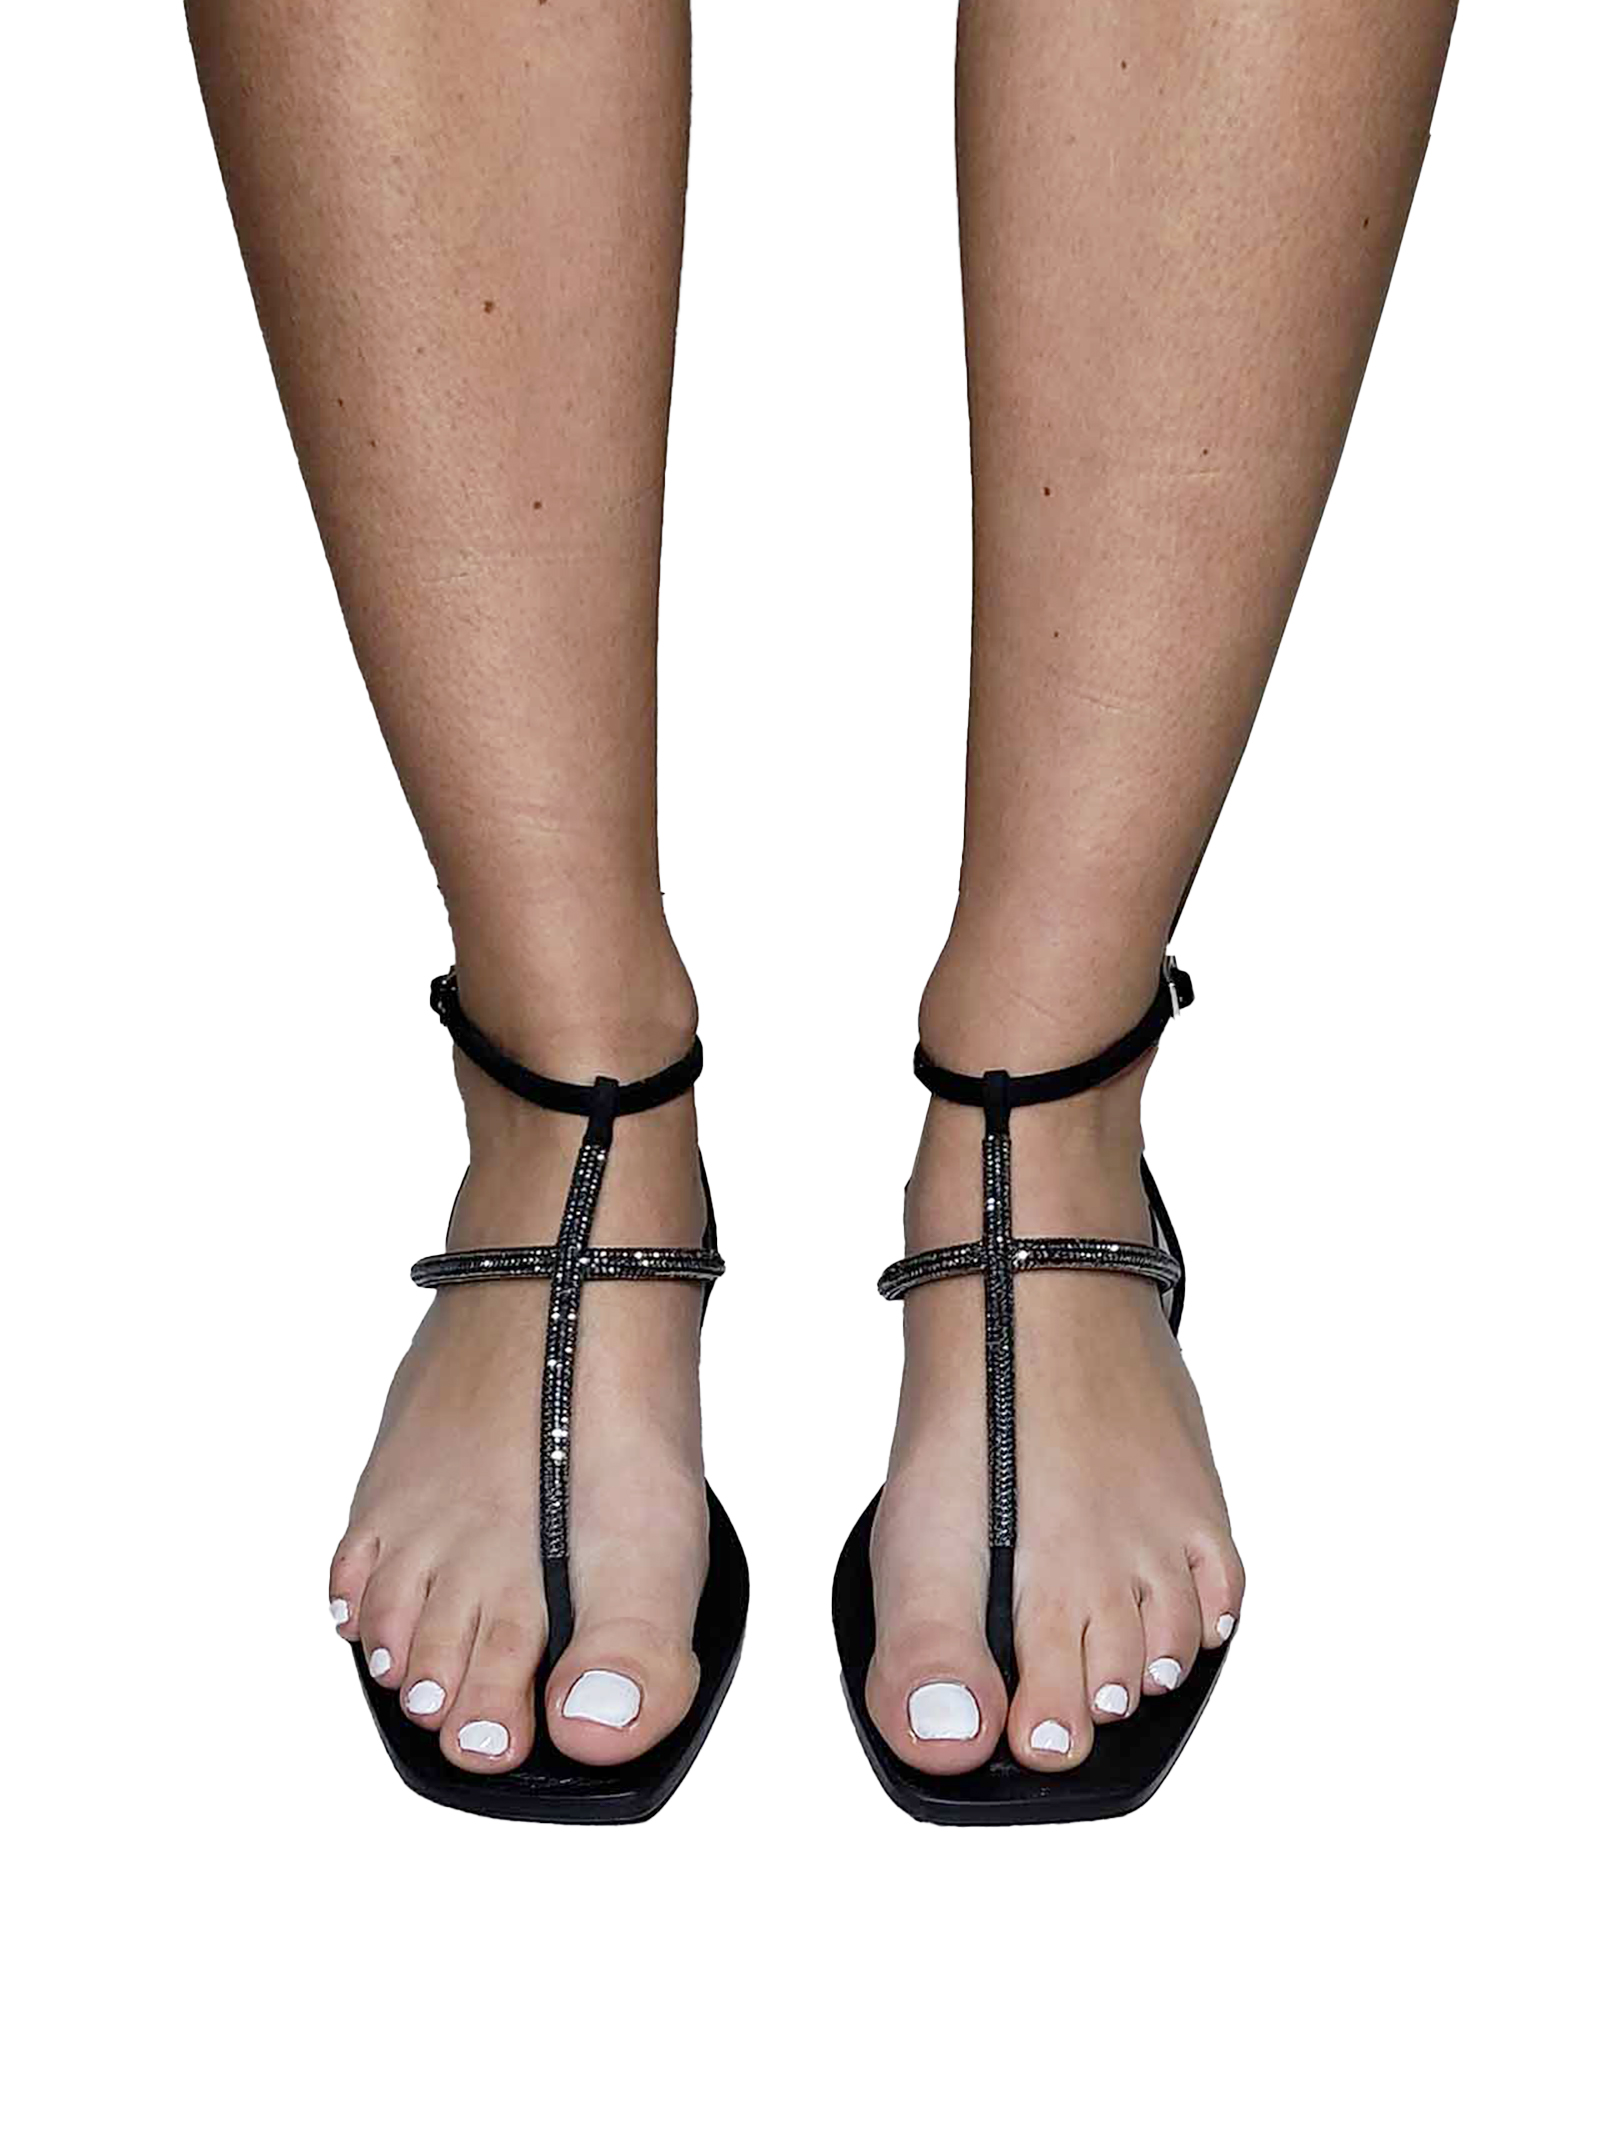 Women's Shoes Thong Sandals In Black Suede And Tone-on-Tone Rhinestones And Back Strap Spatarella | Flat sandals | DI81001